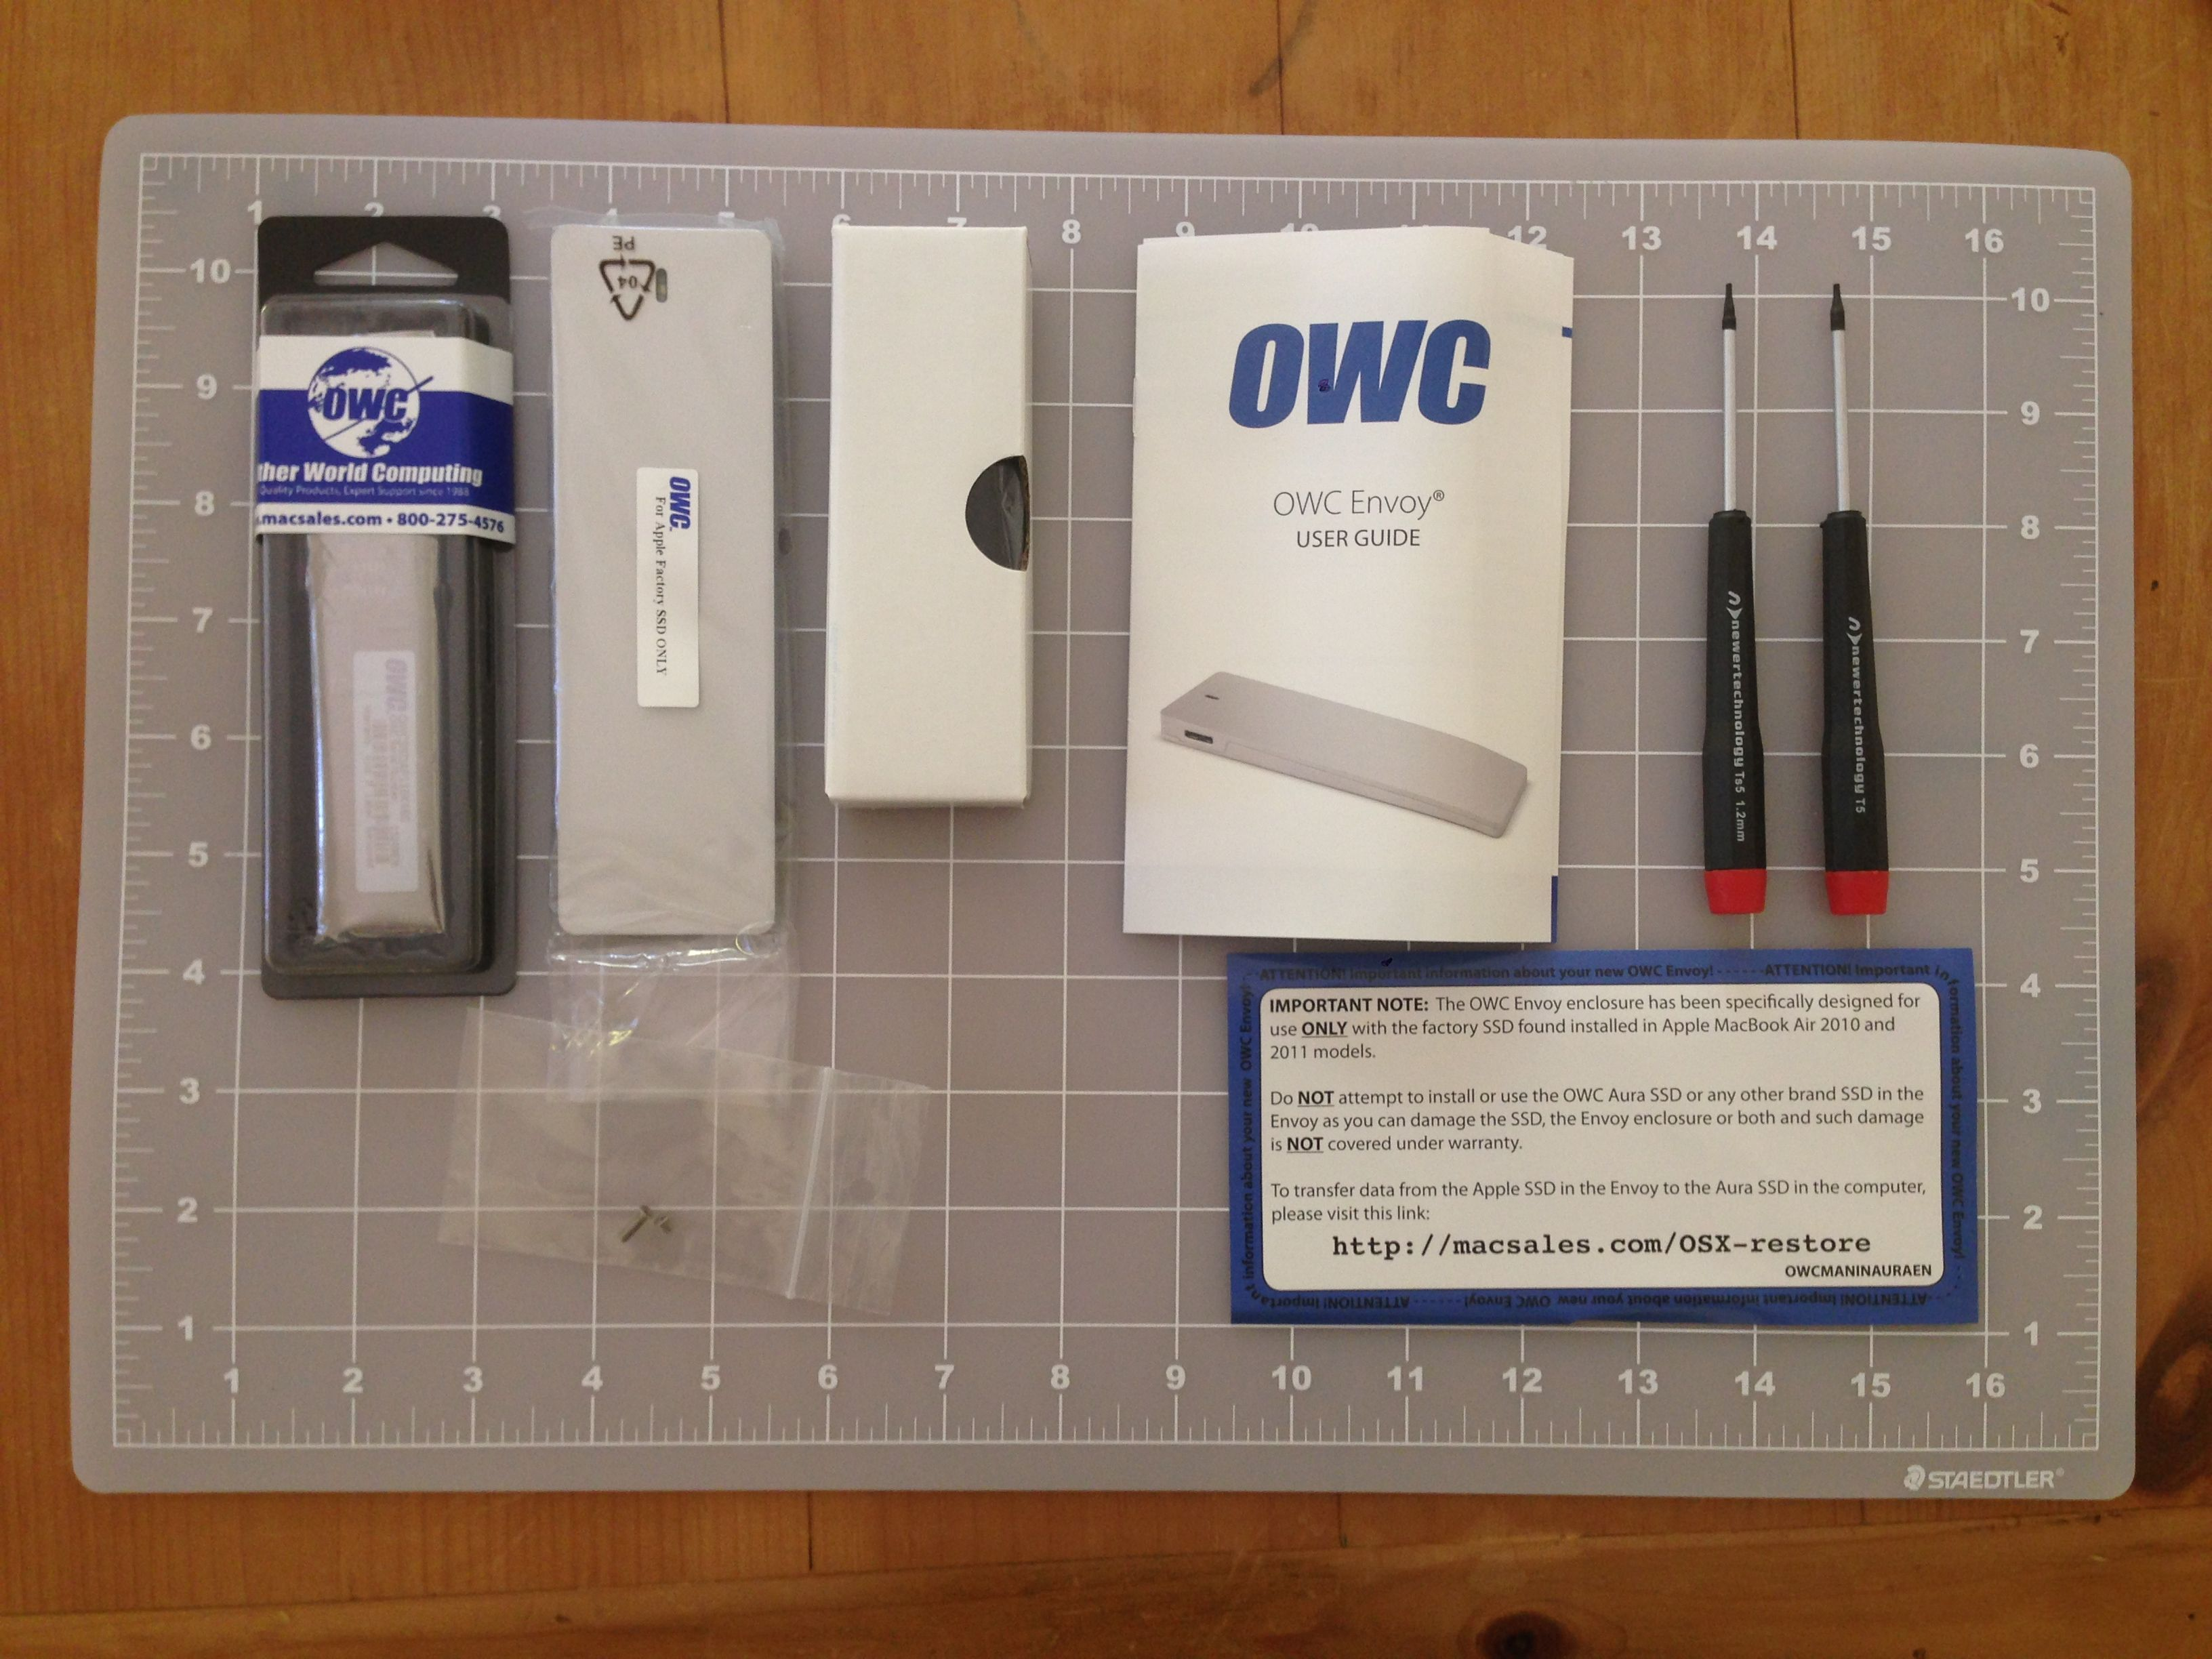 Contents of the Auro Pro SSD + Envoy + Tools kit.